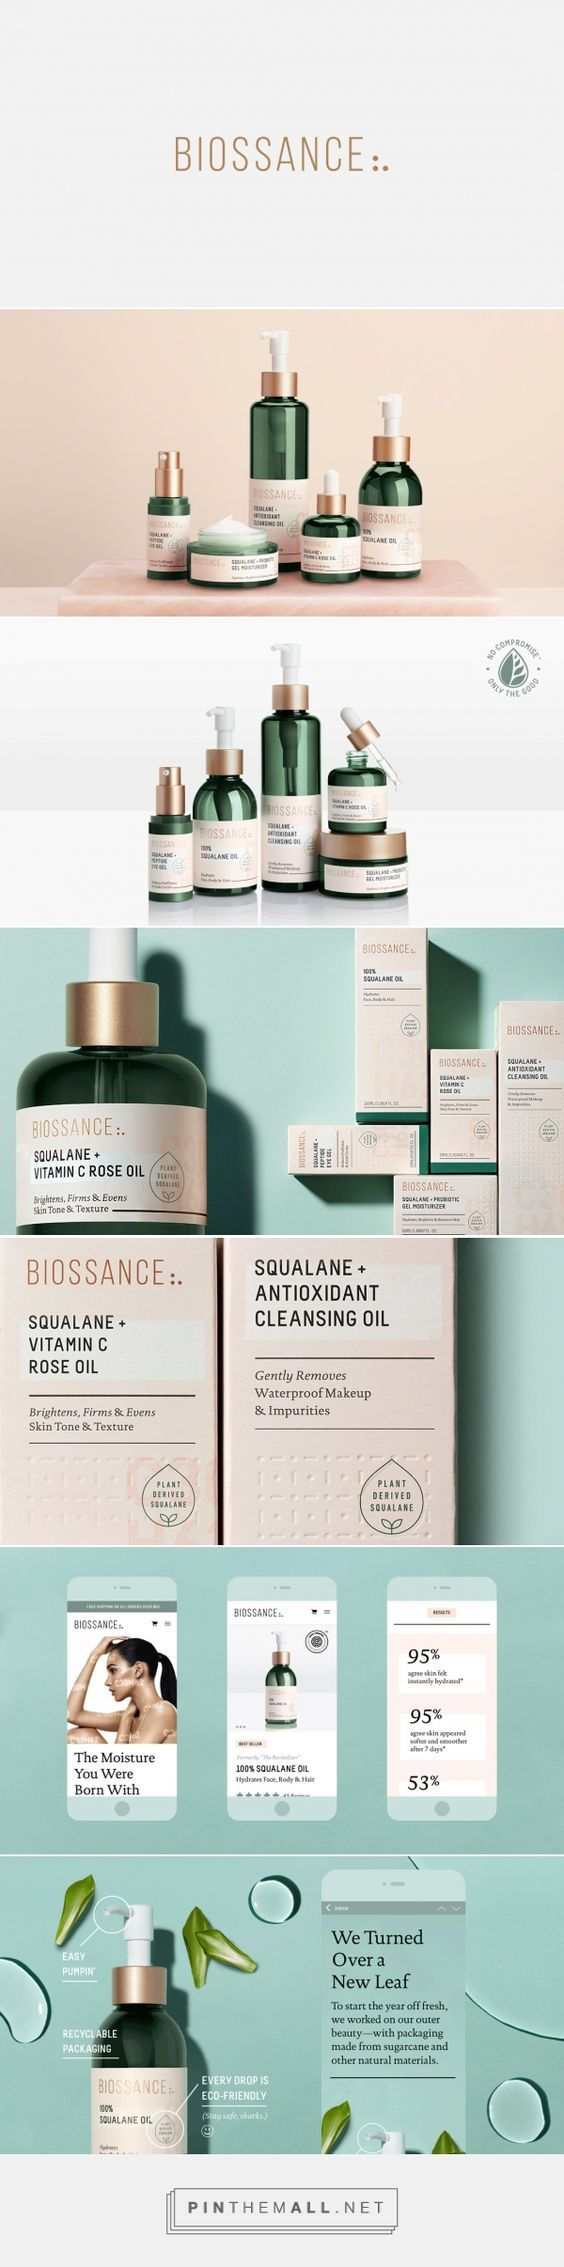 (54) Biossance on Behance - created via https://pinthemall.net?utm_content=buffer880ca&utm_medium=social&utm_source=pinterest.com&utm_campaign=buffer | Packaging | Pinterest / Packaging / Design / Branding / Inspiraton / Ideas / Beauty / Cosmetics / Make-up Remover / Natural / Organic / Rose Gold / Copper / Modern / Feminine